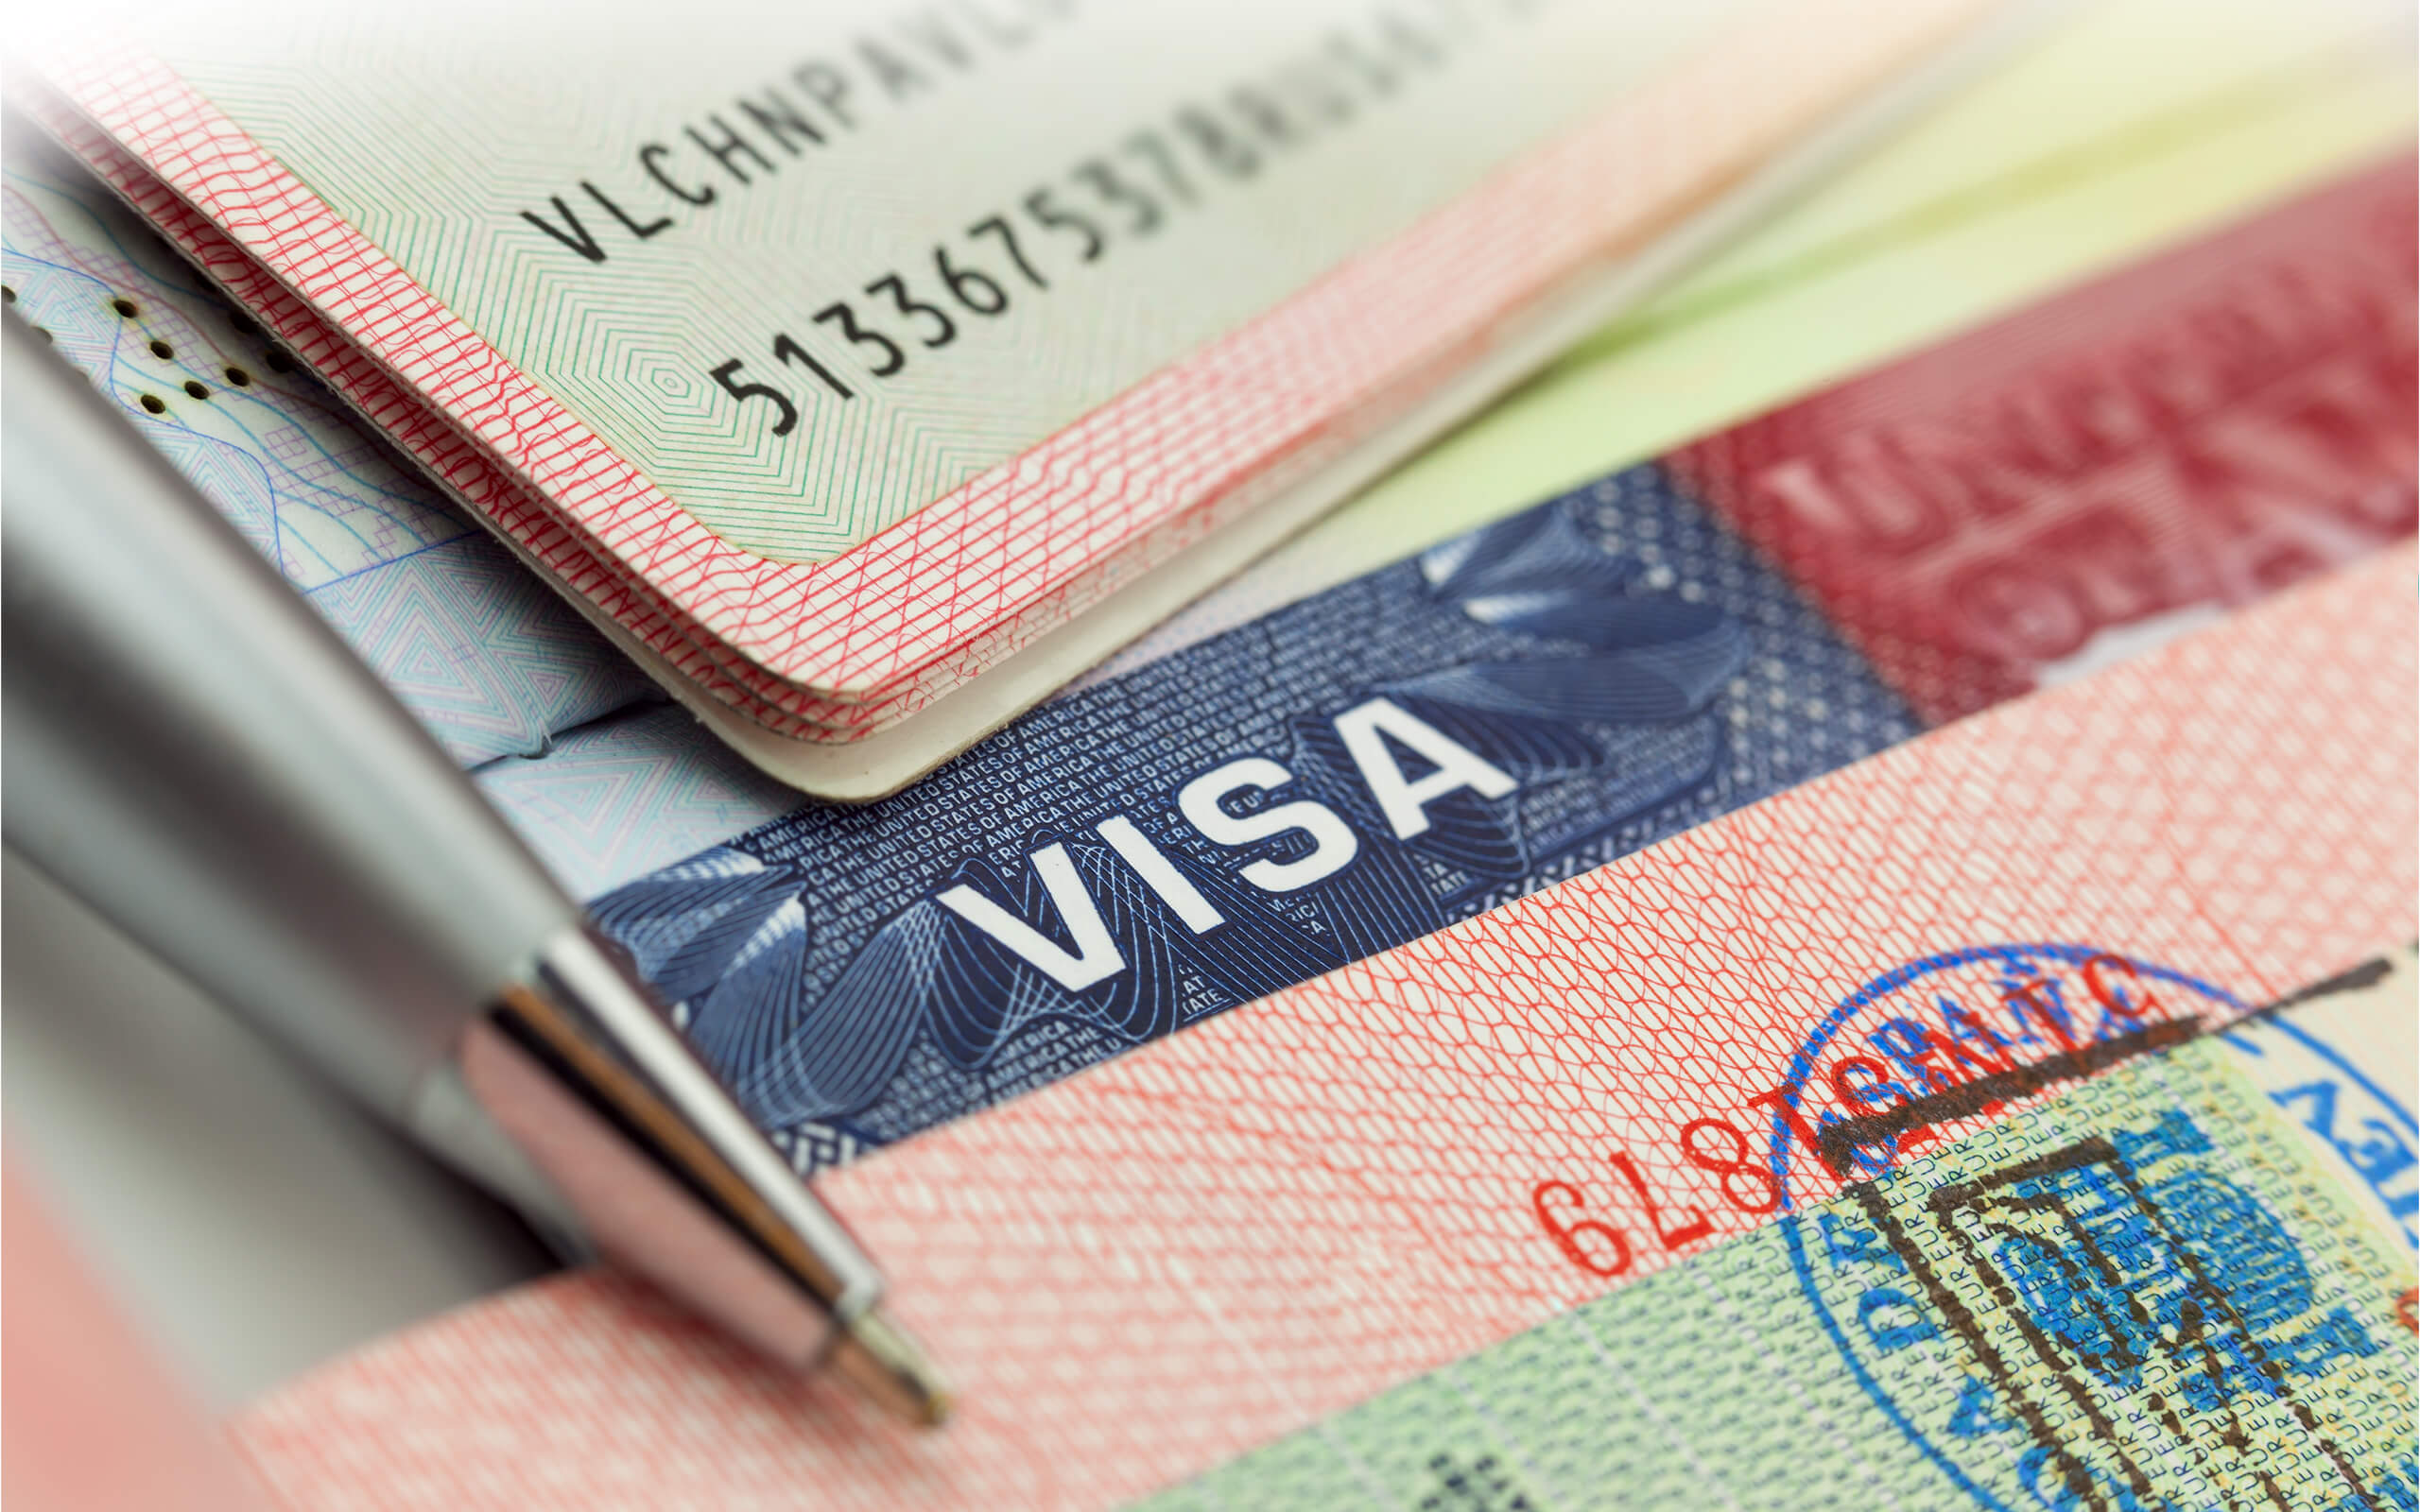 Abstract visa and passport documents